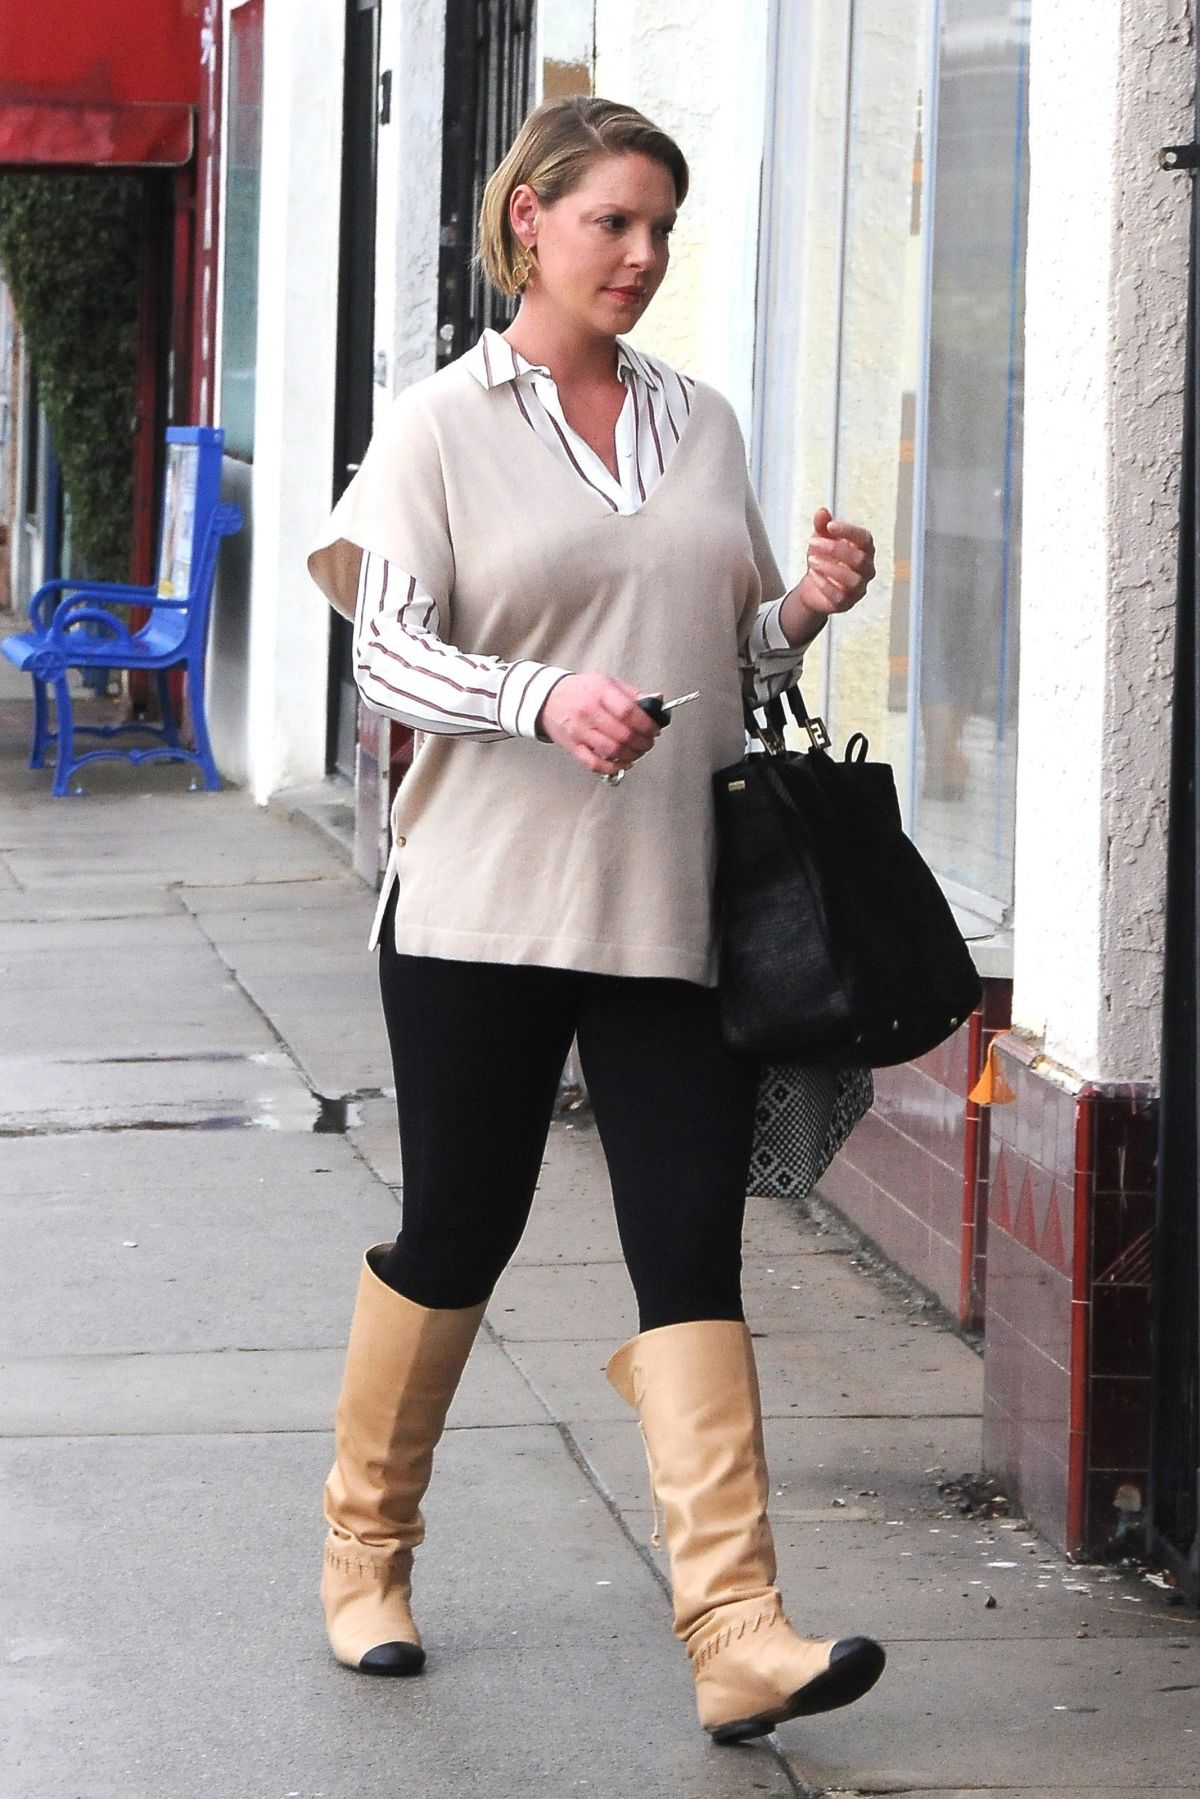 Pregnant KATHERINE HEIGL Out Shopping In Los Angeles 11/20 ...